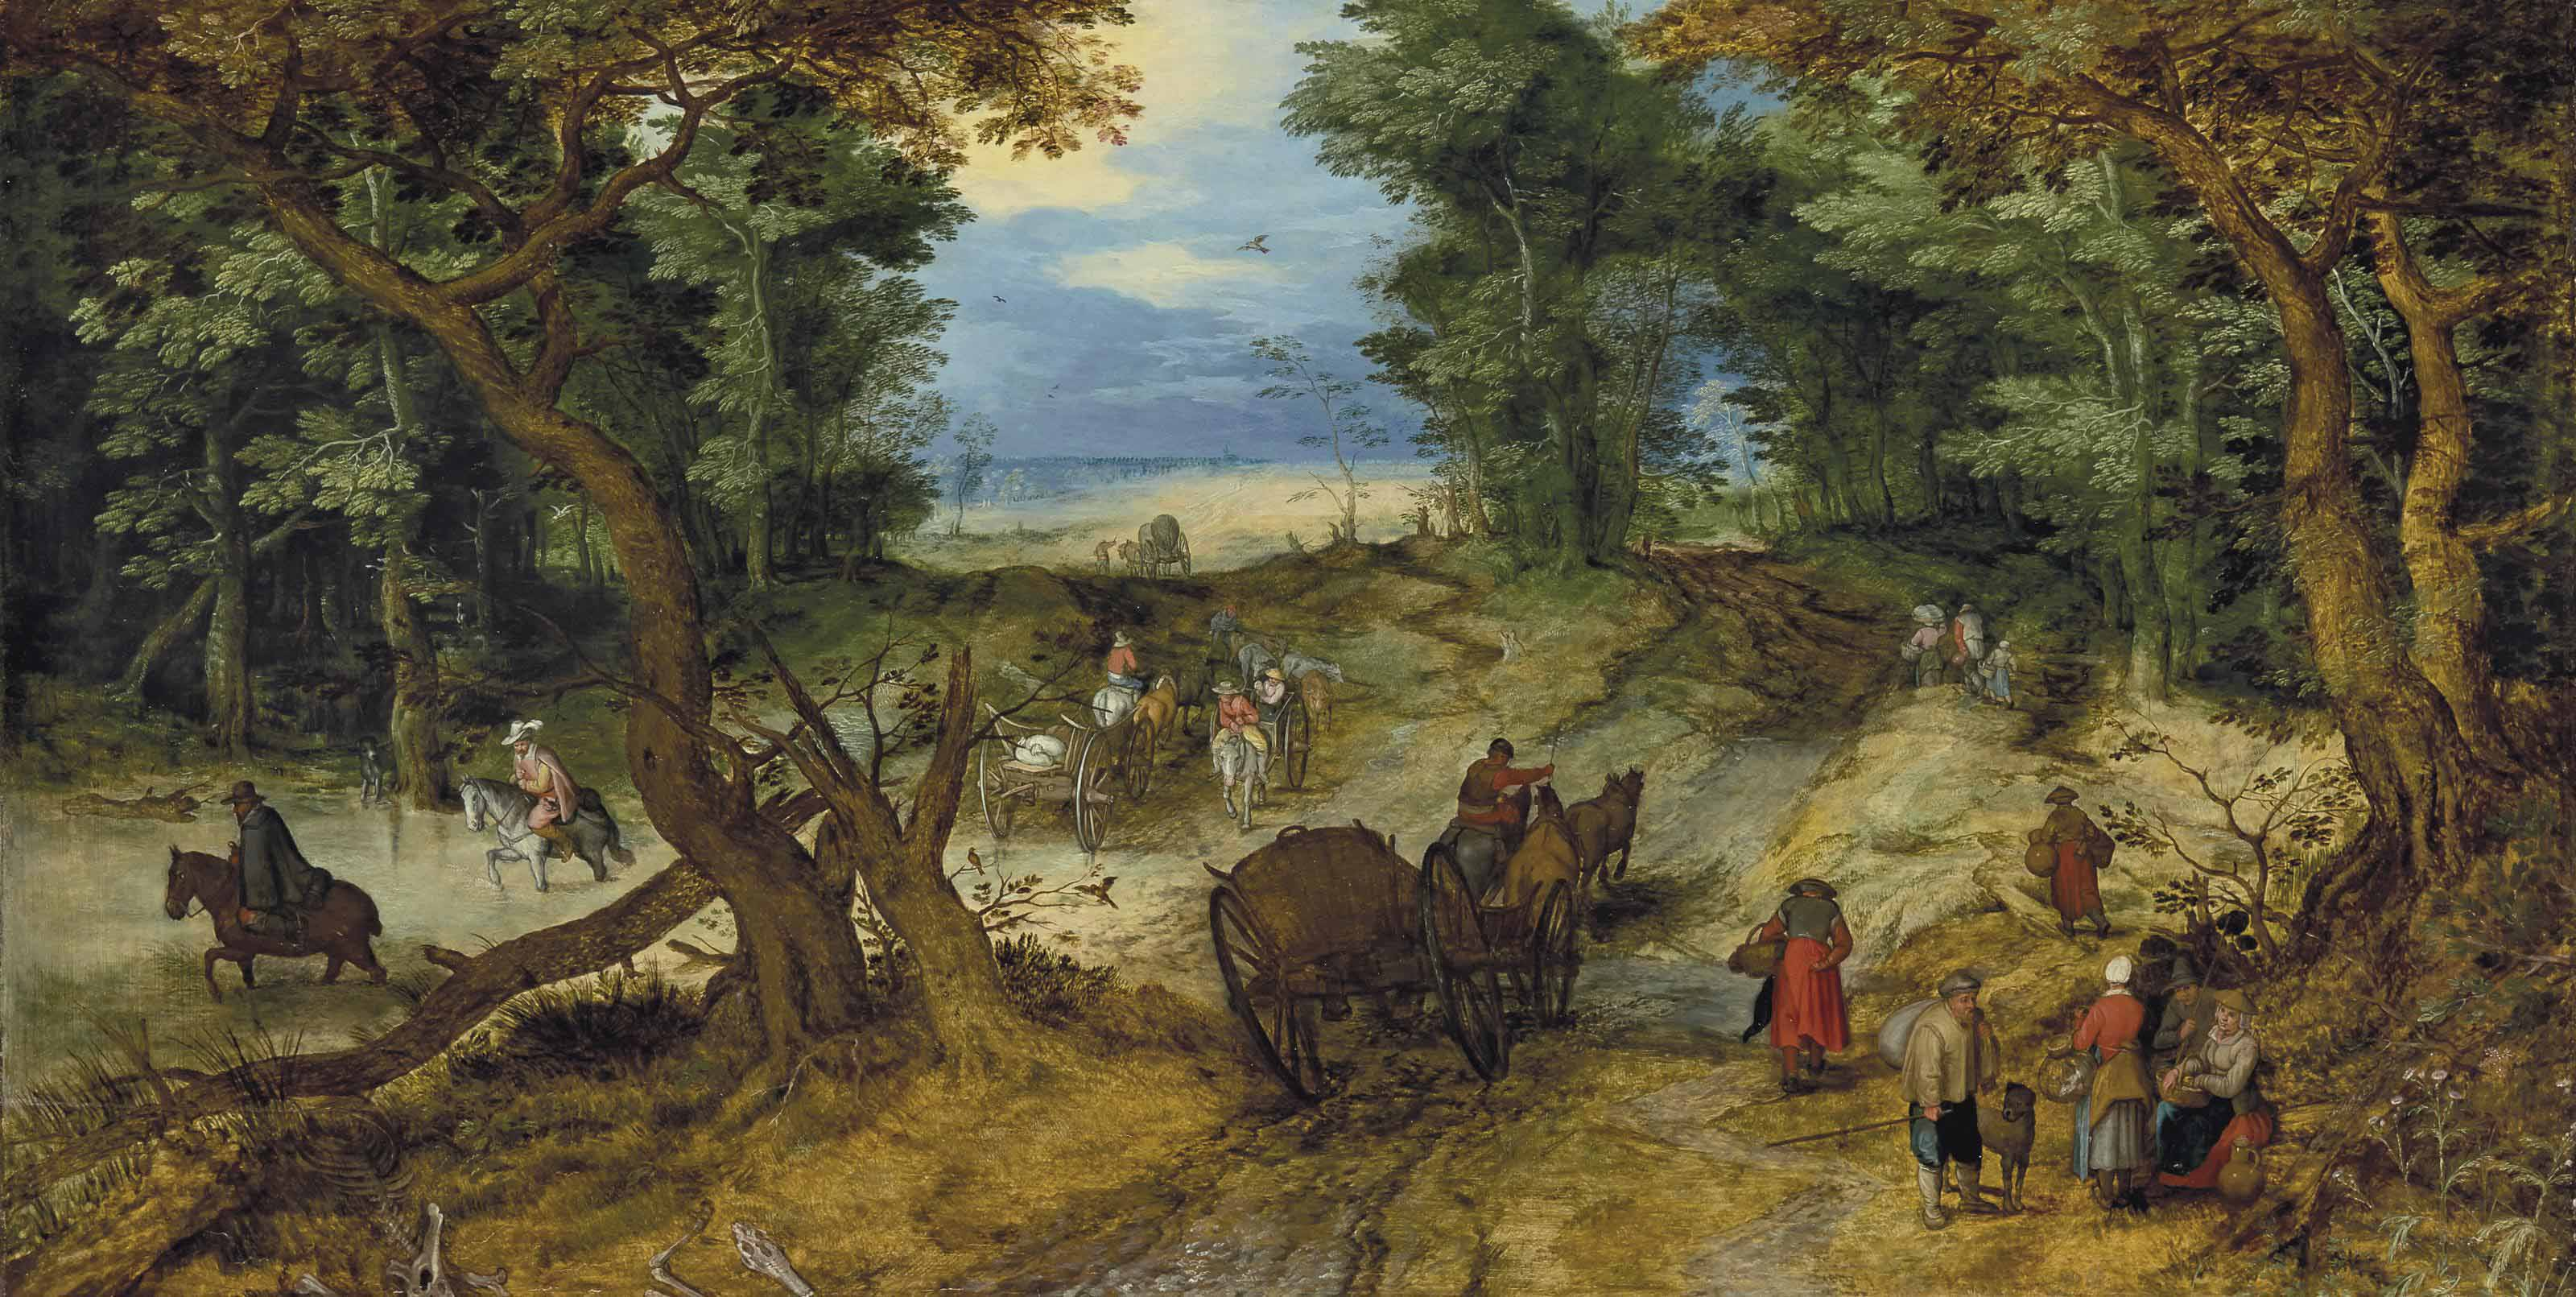 jan_breughel_l ancien _a_wooded_landscape_with_travelers_on_a_path oll privee